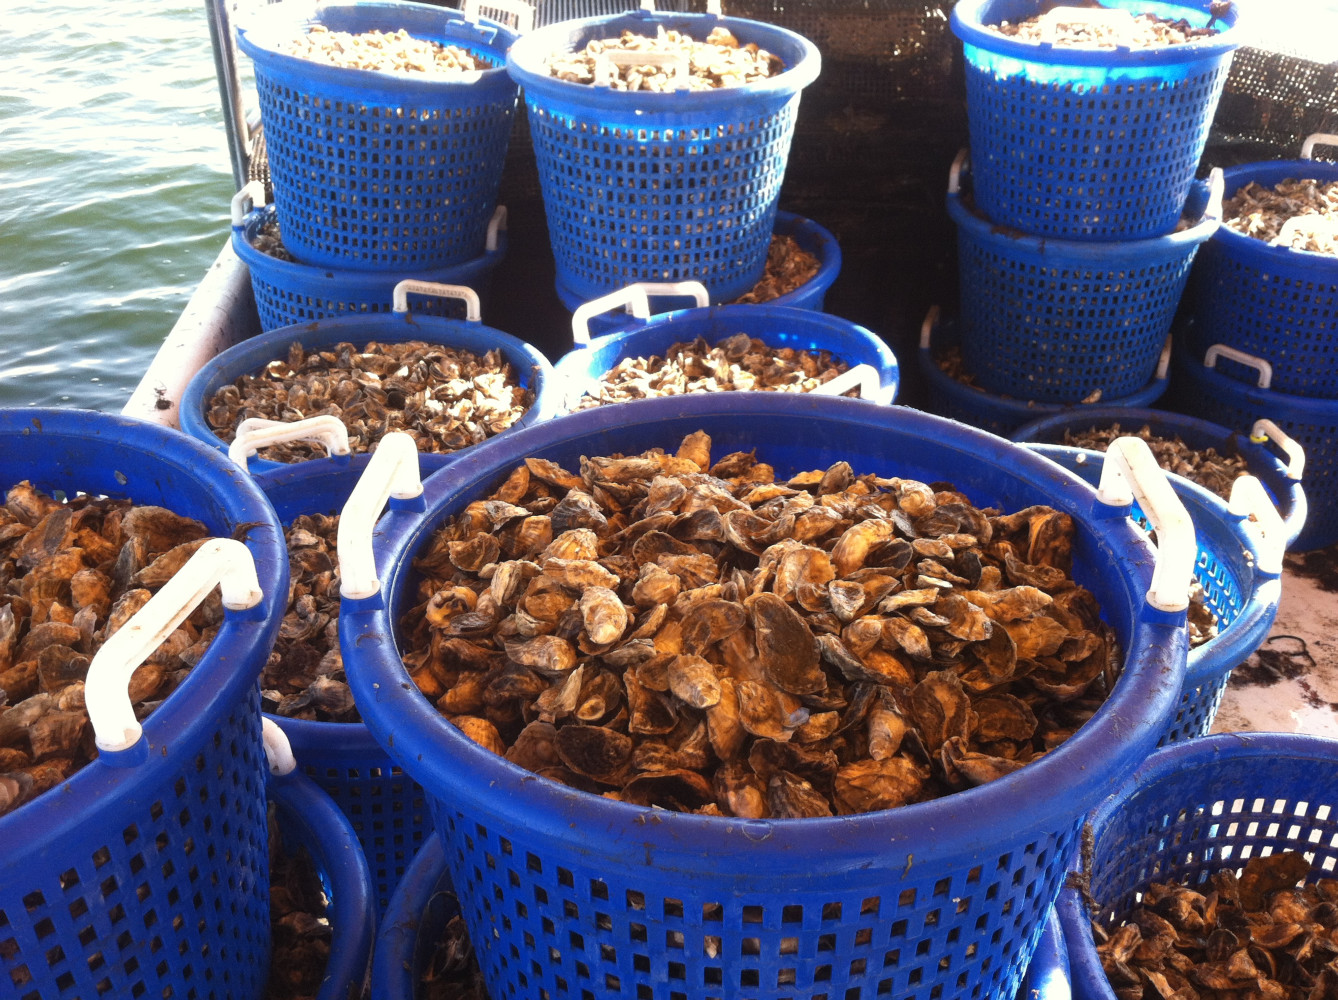 """11-4-12 WE HARVESTED 50 BASKETS OF 1""""+ OYSTER SEED FROM OUR SUBMERGED LEASE"""